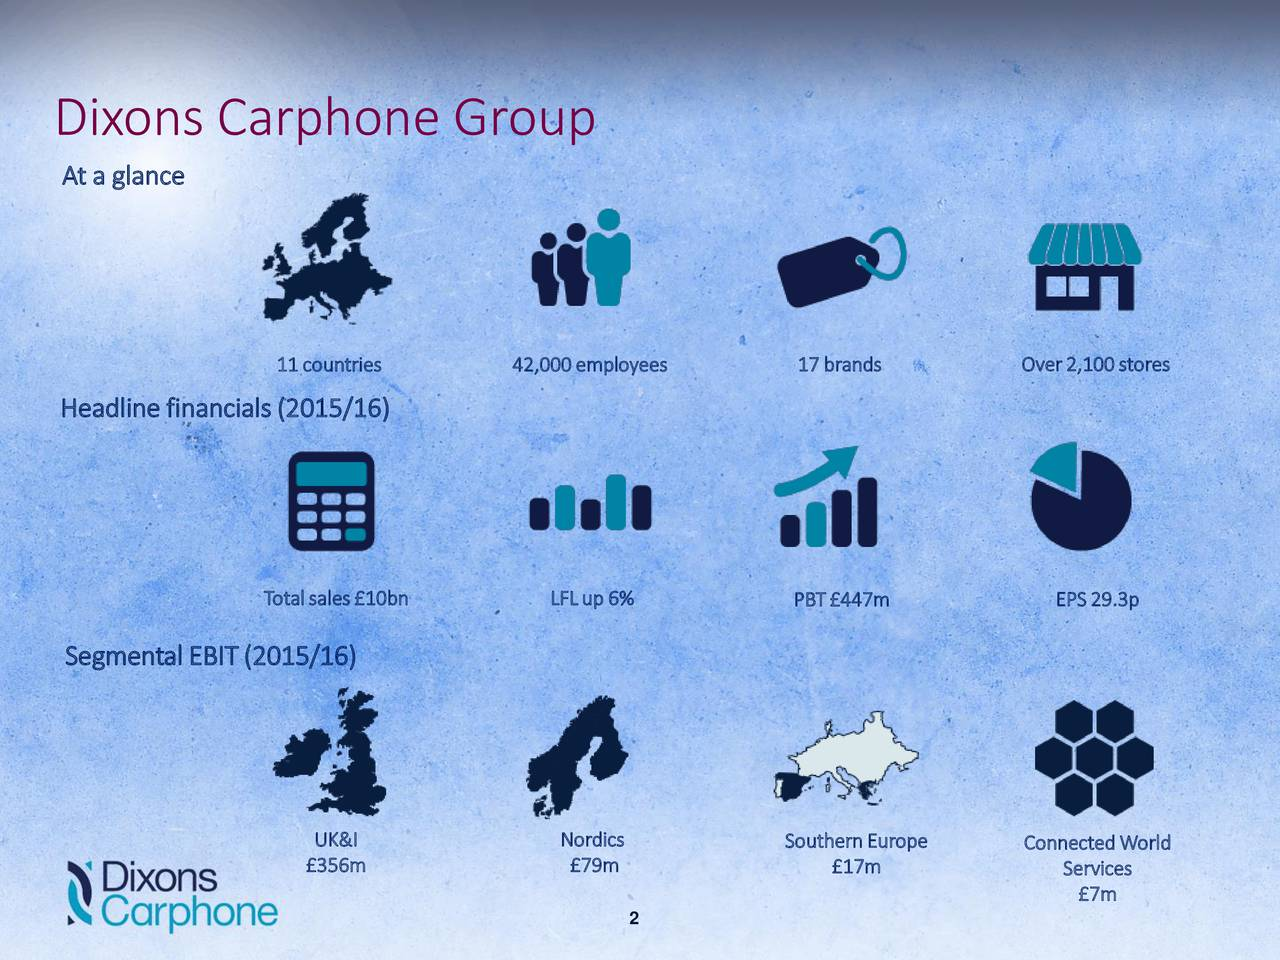 At a glance 11 countries 42,000employees 17 brands Over2,100stores Headline financials (2015/16) Totalsales10bn LFLup6% PBT447m EPS29.3p Segmental EBIT(2015/16) UK&I Nordics SouthernEurope ConnectedWorld 356m 79m 17m Services 2 7m